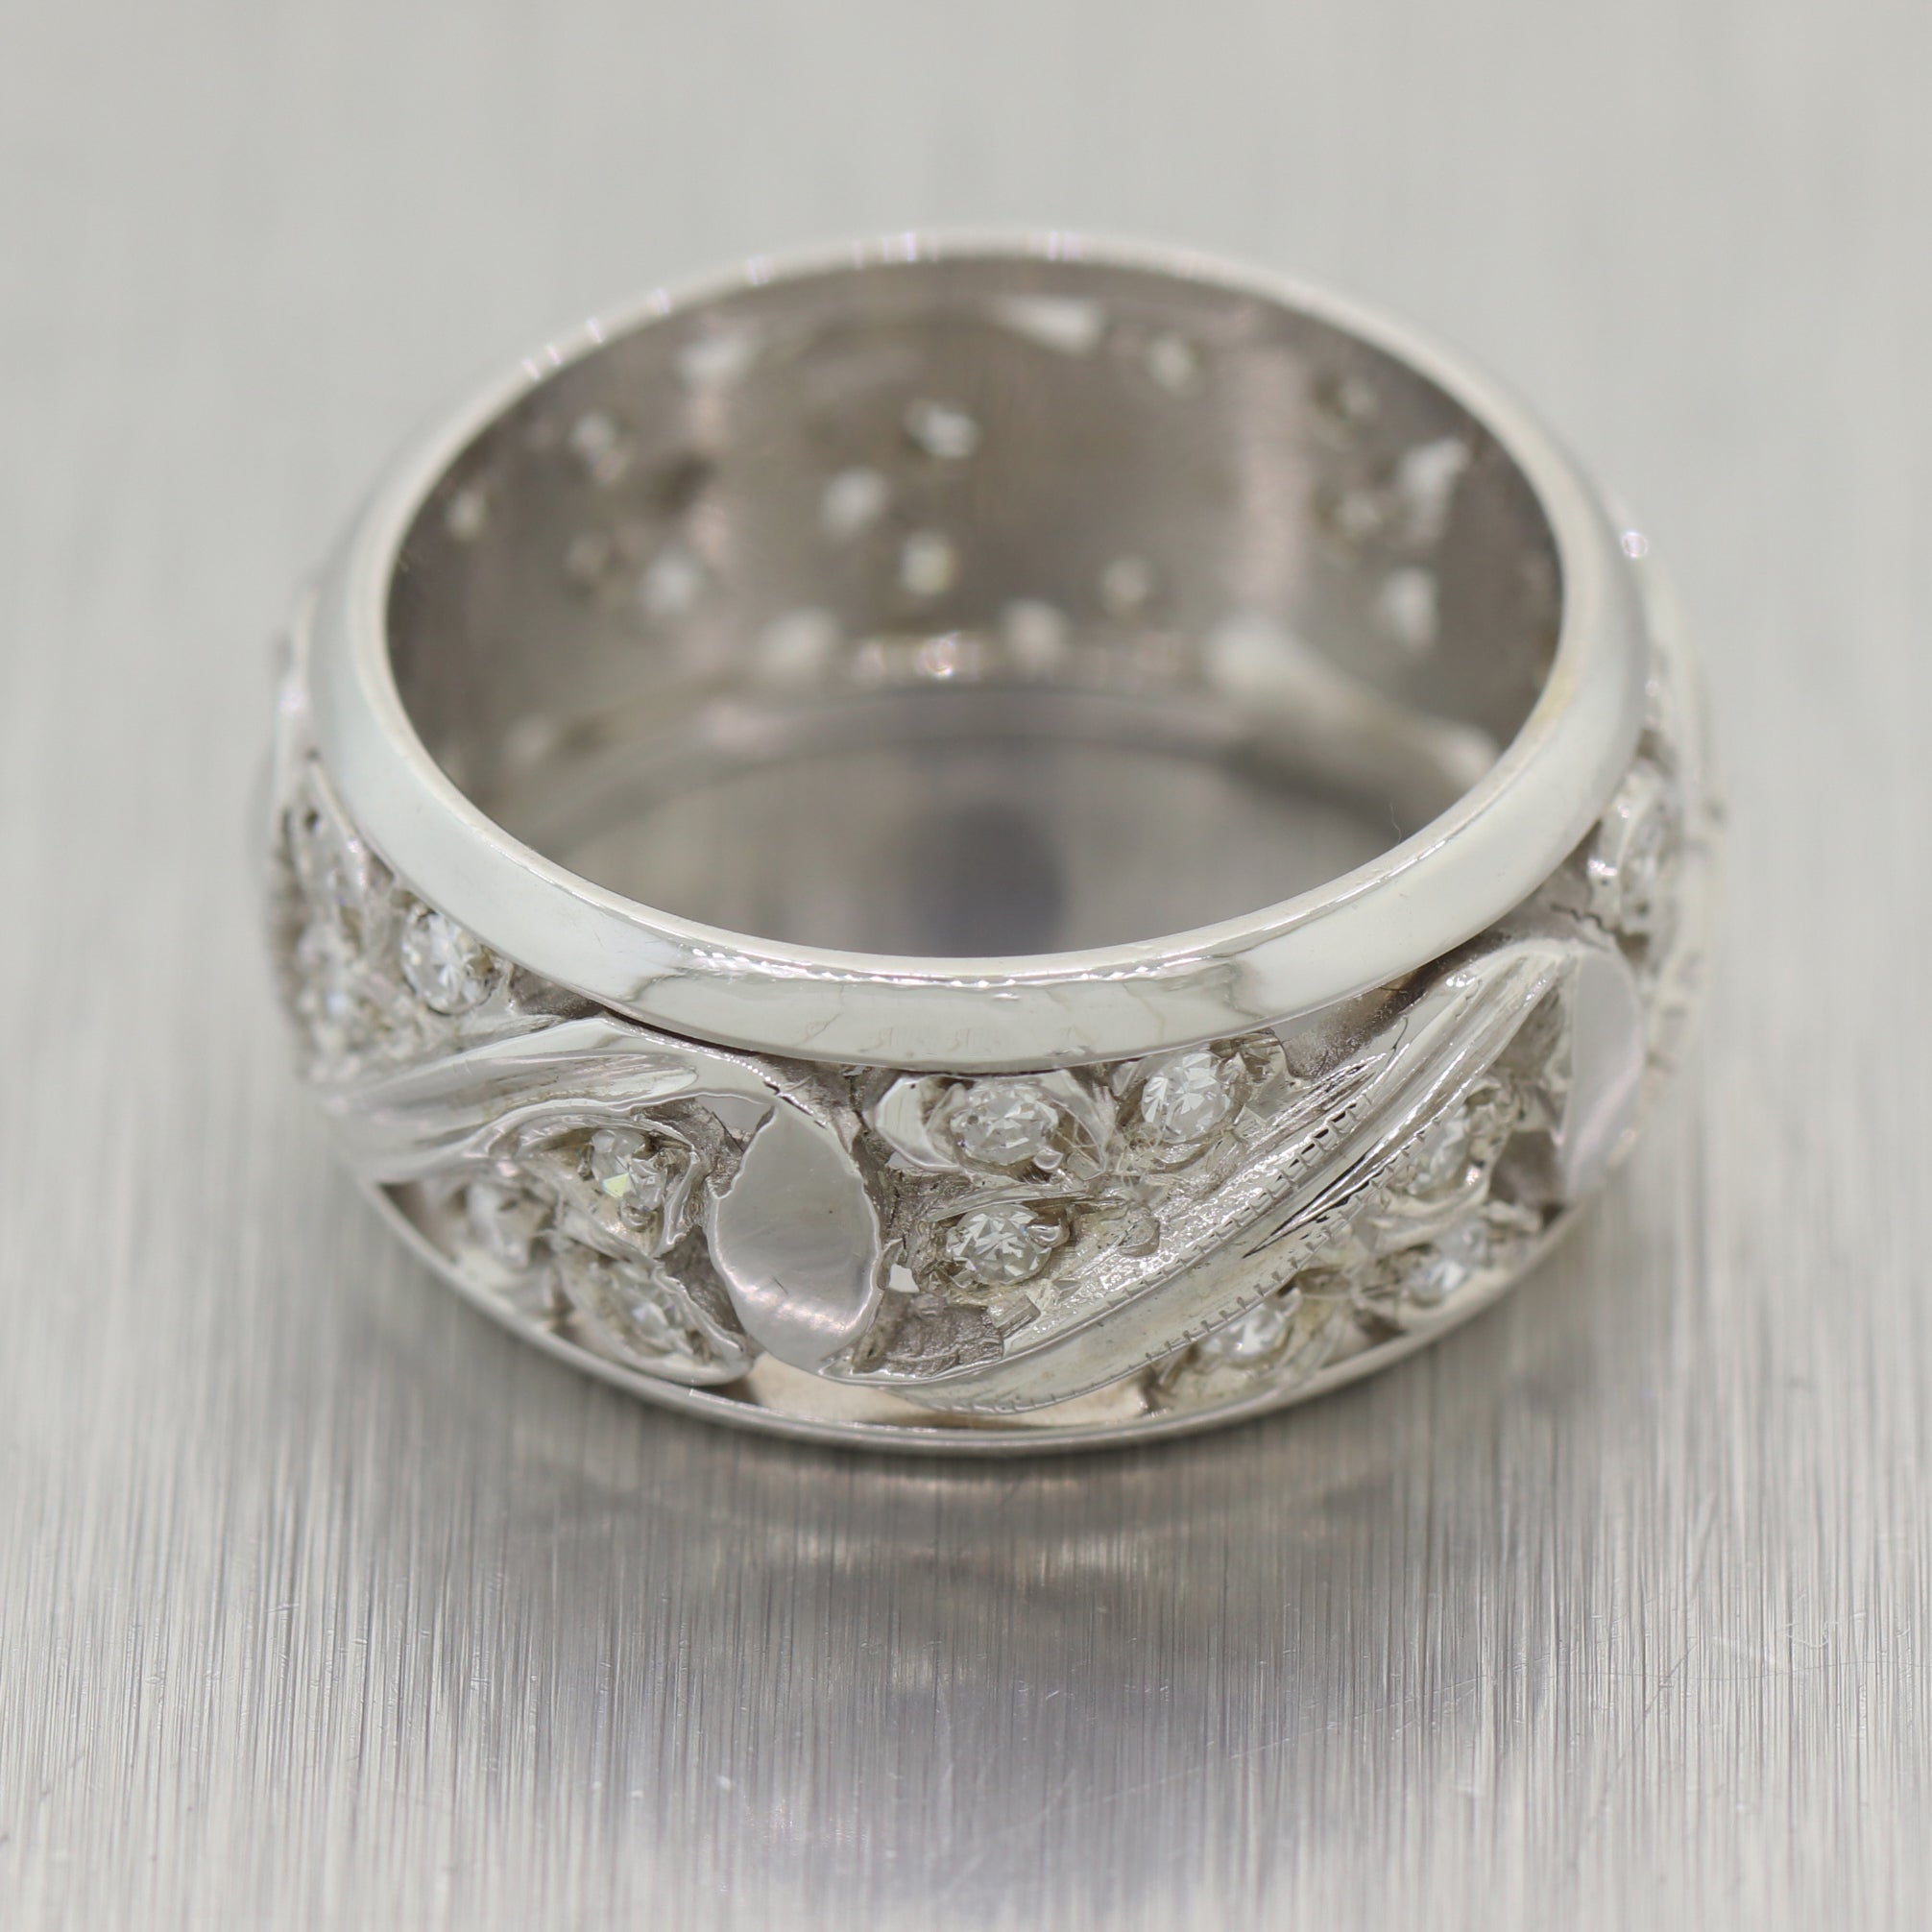 1930's Antique Art Deco 14k White Gold 0.50ctw Diamond Filigree Ring